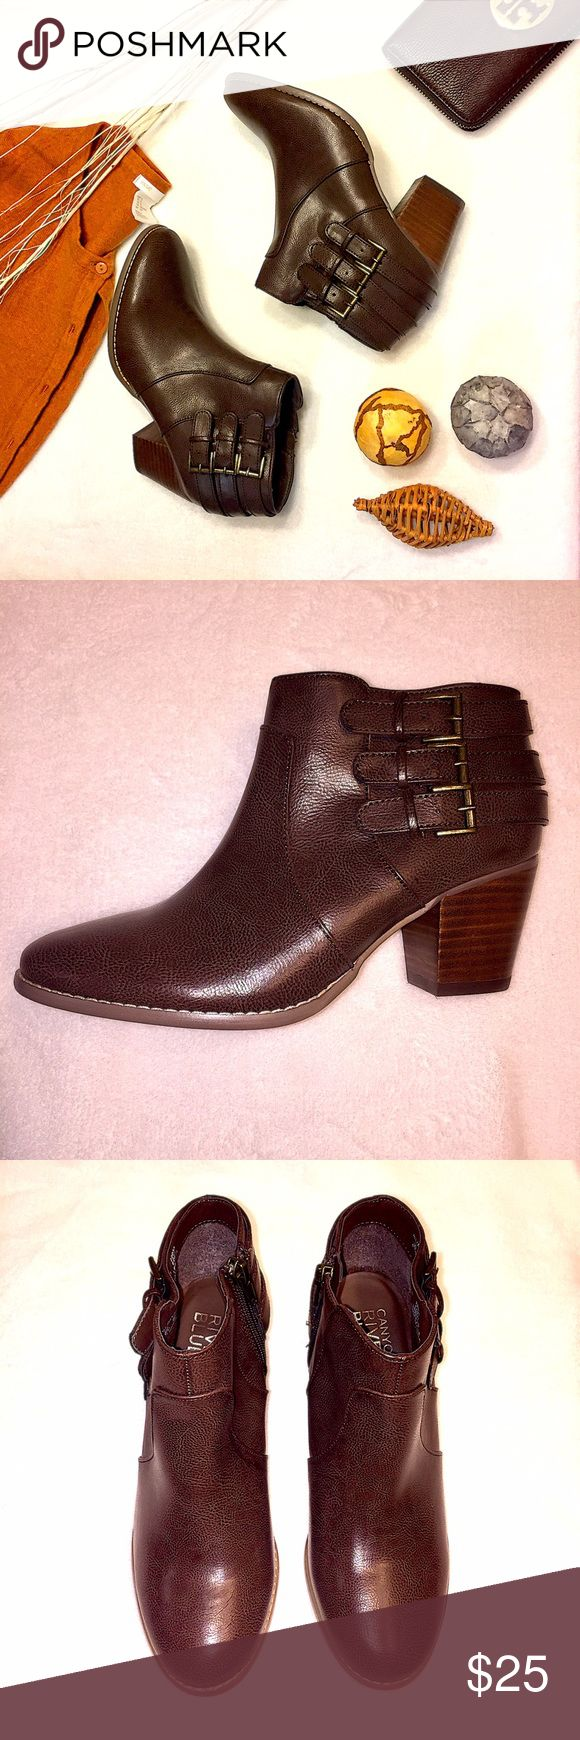 🛍Canyon River Blues Ankle Booties🛍 New! Never used. 2.25 in heel height. 3 adjustable buckles. Side zipper. Synthetic leather. With original box. Shoes Ankle Boots & Booties